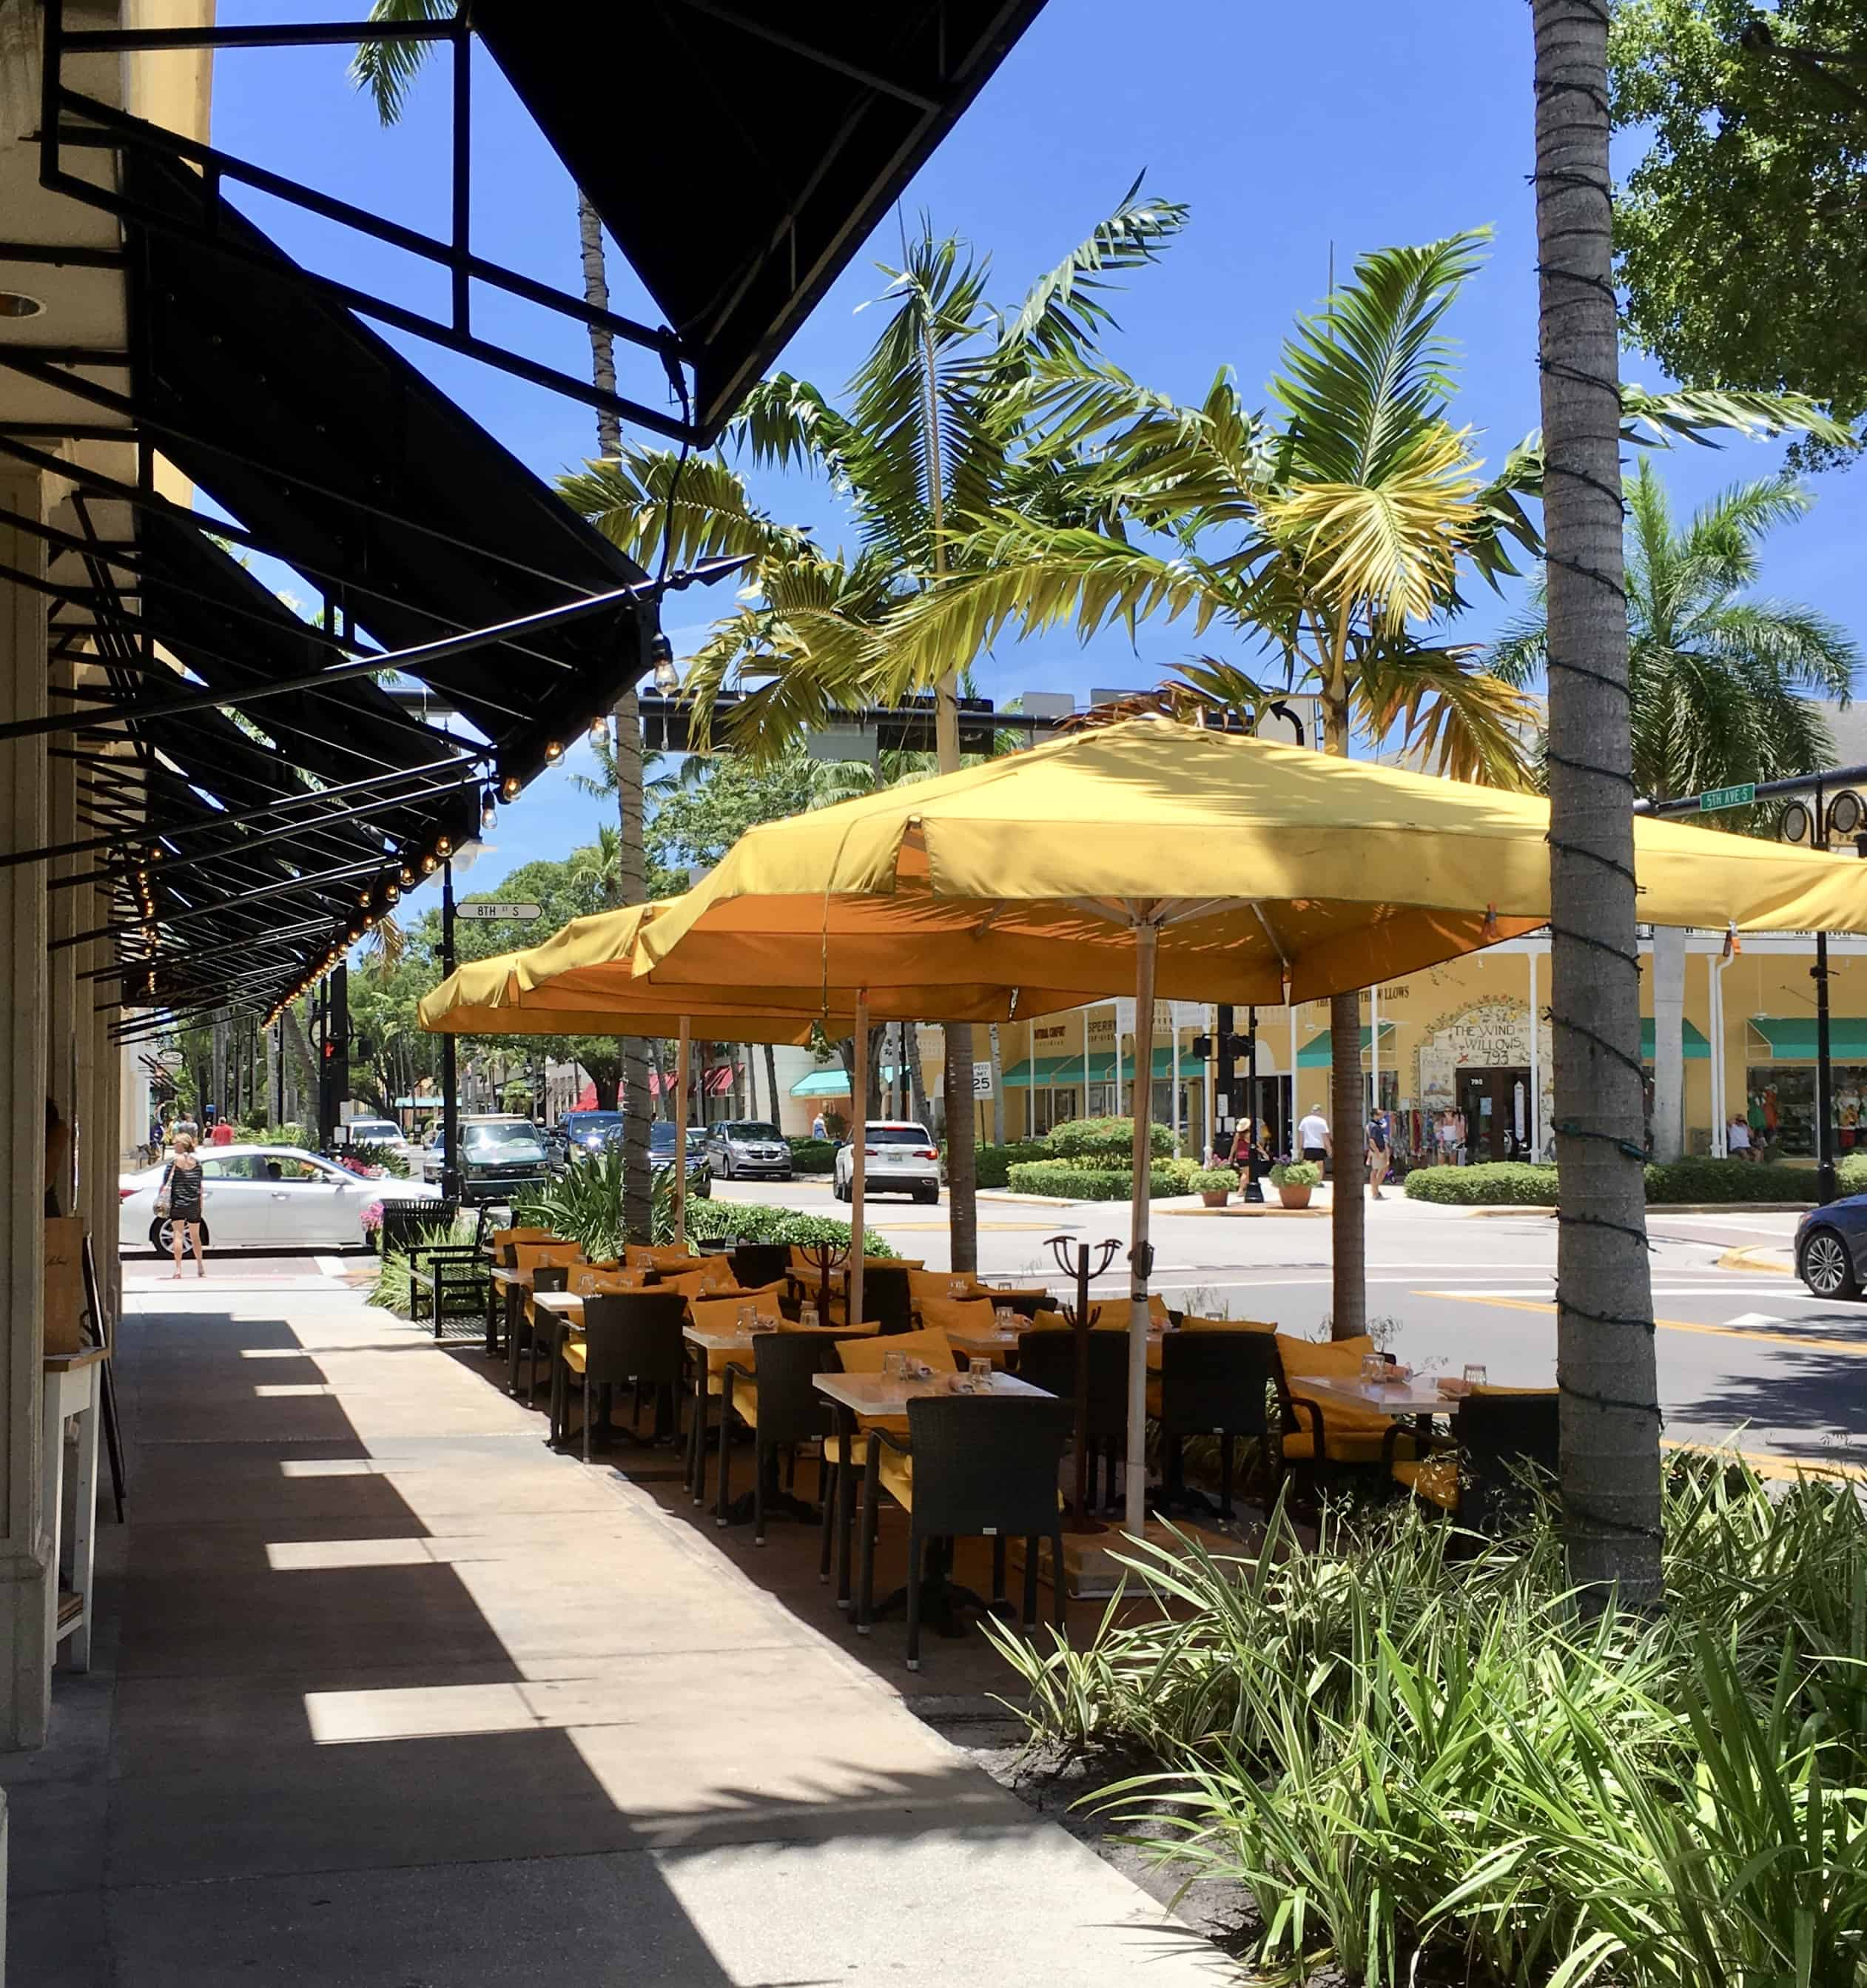 #ad How to spend 24 Hours In Naples, Florida! Take in the beautiful sunsets, enjoy fine dining, and shopping. There's something for everyone in Naples! | tastefulventure.com made in partnership with RedRoof.com #RoadtoPillow #RR #TapTapGo